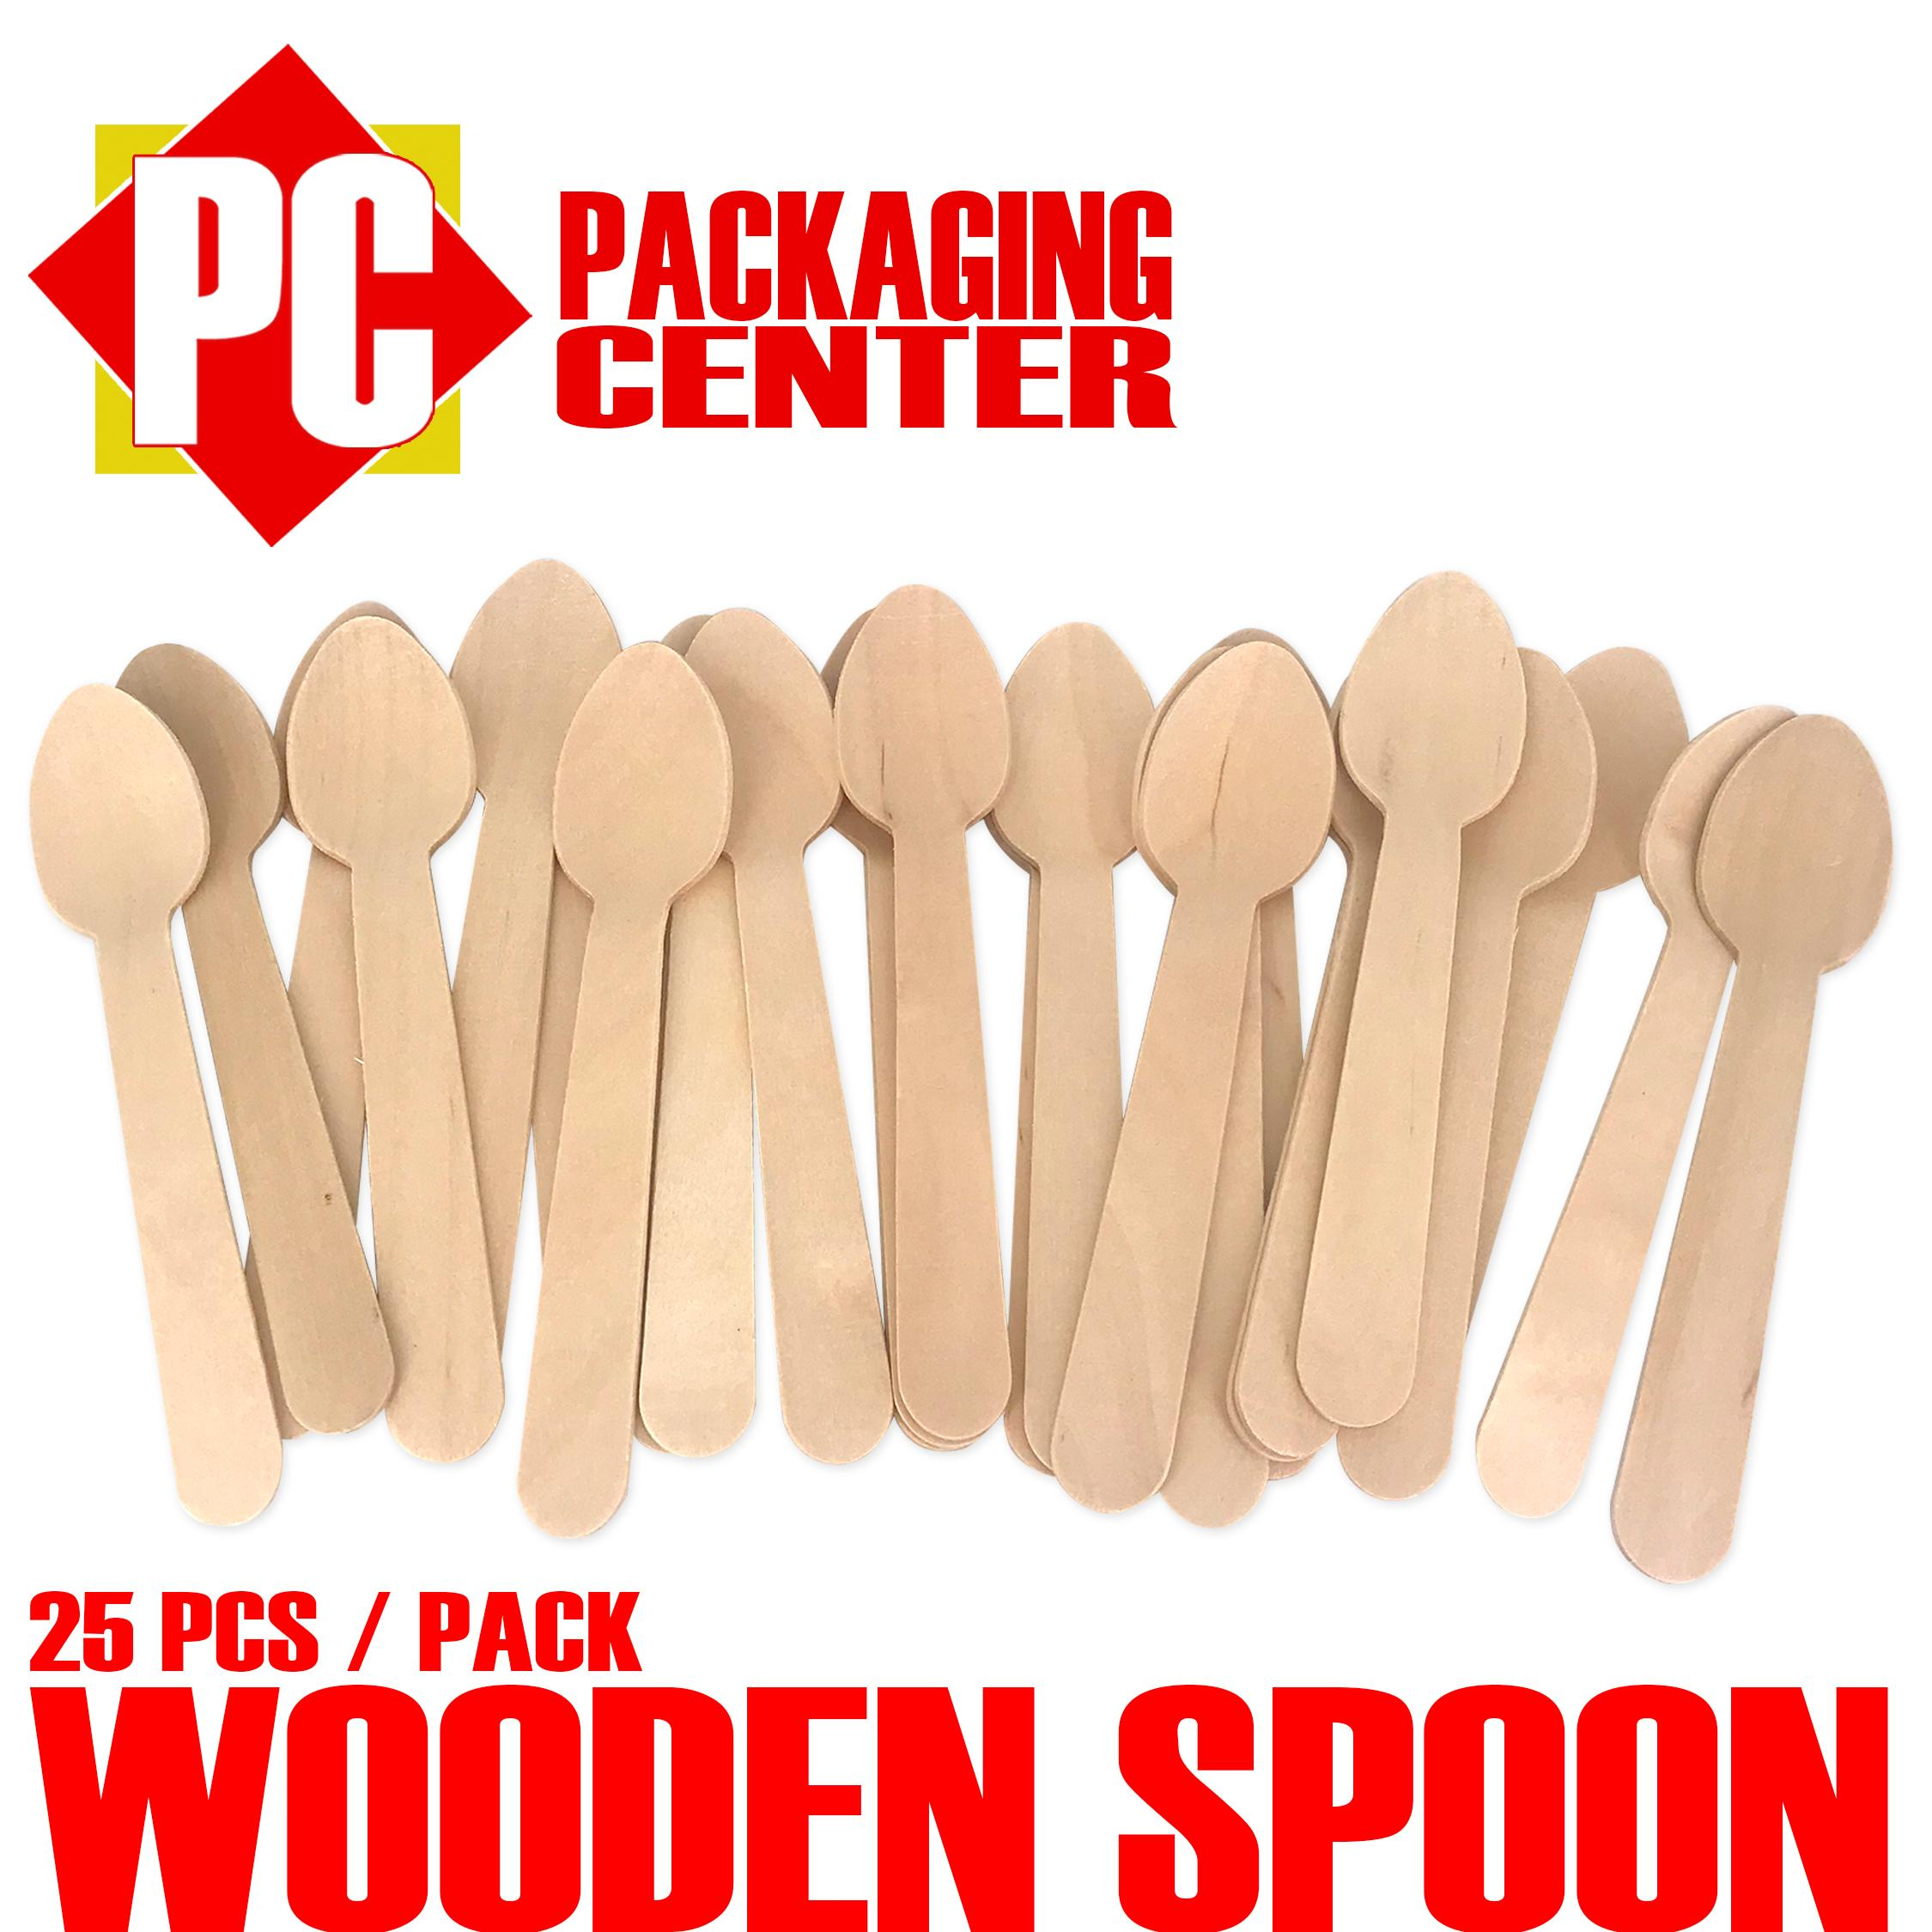 Wooden Spoon By 25pcs Per Pack By Pc Packaging Center.